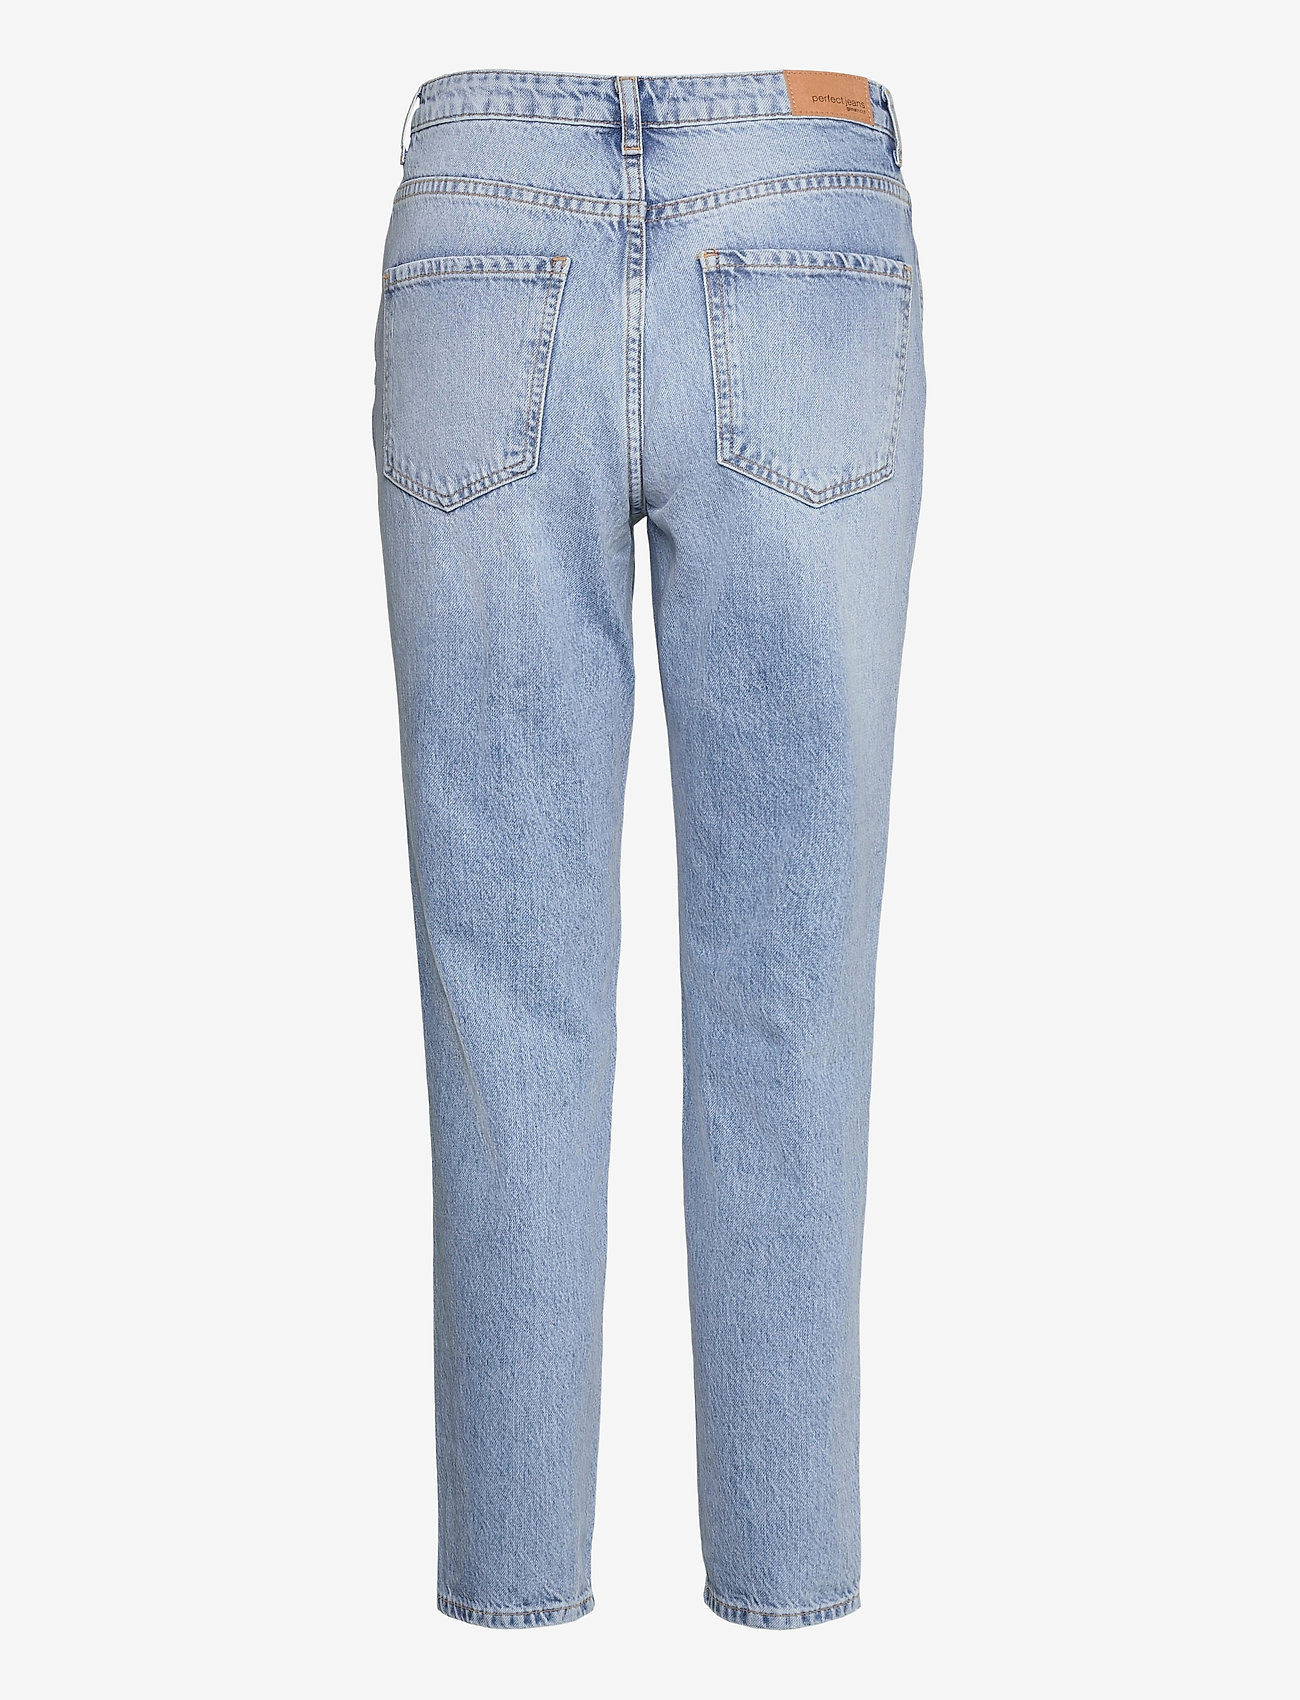 Gina Tricot - Dagny mom jeans - mom jeans - ocean blue dest (5079) - 1